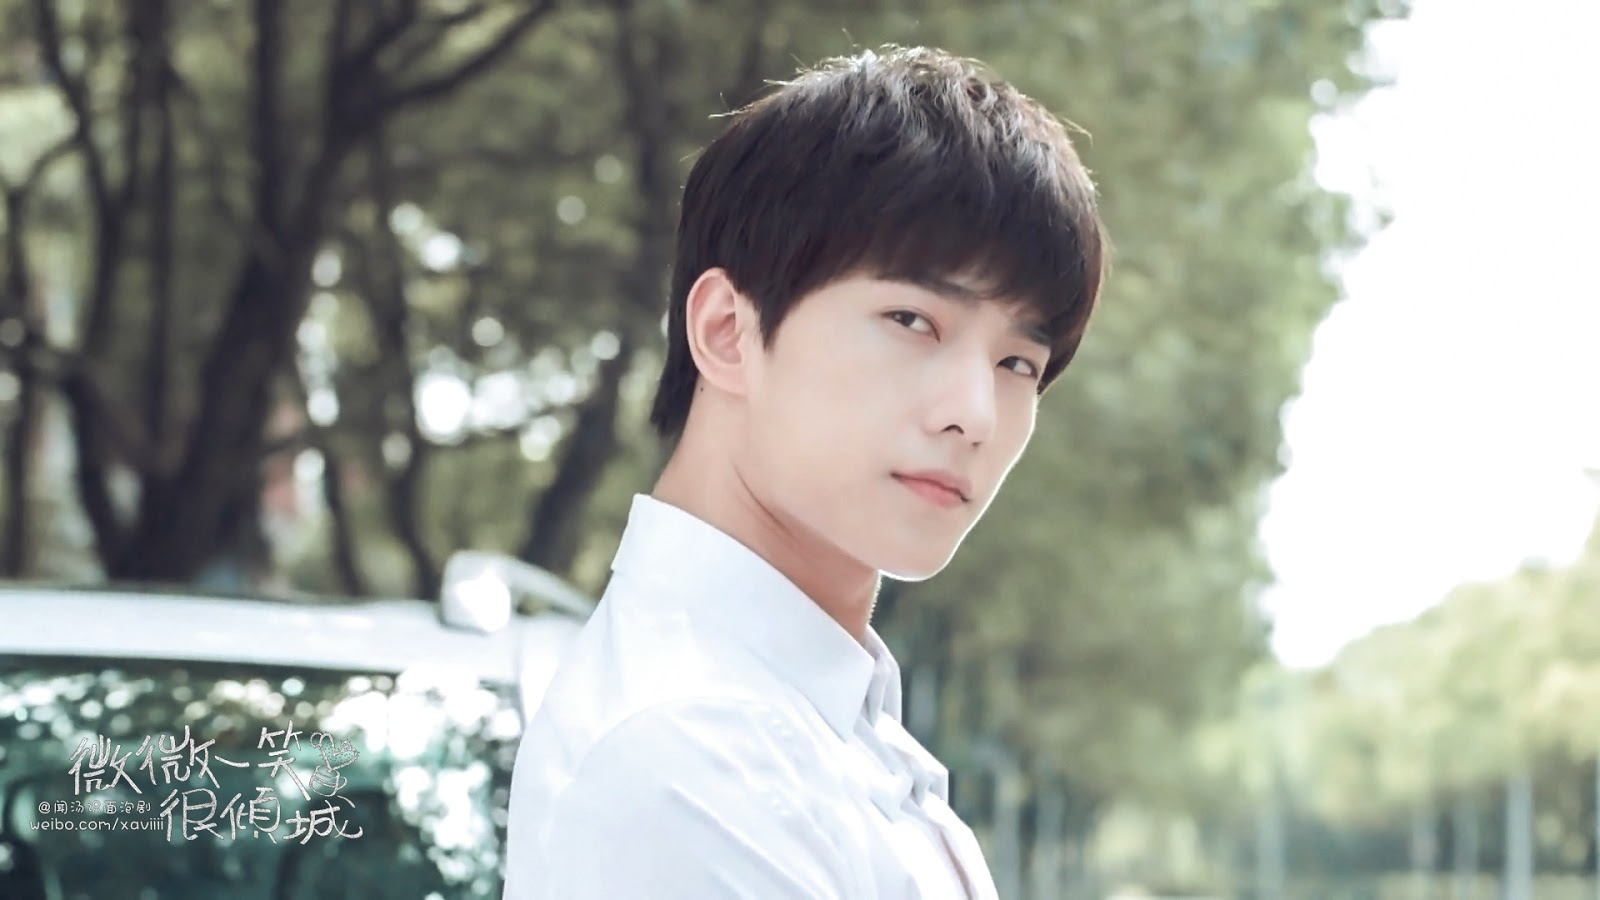 Synopsis of 2016 popular Chinese drama 'Love O2O'